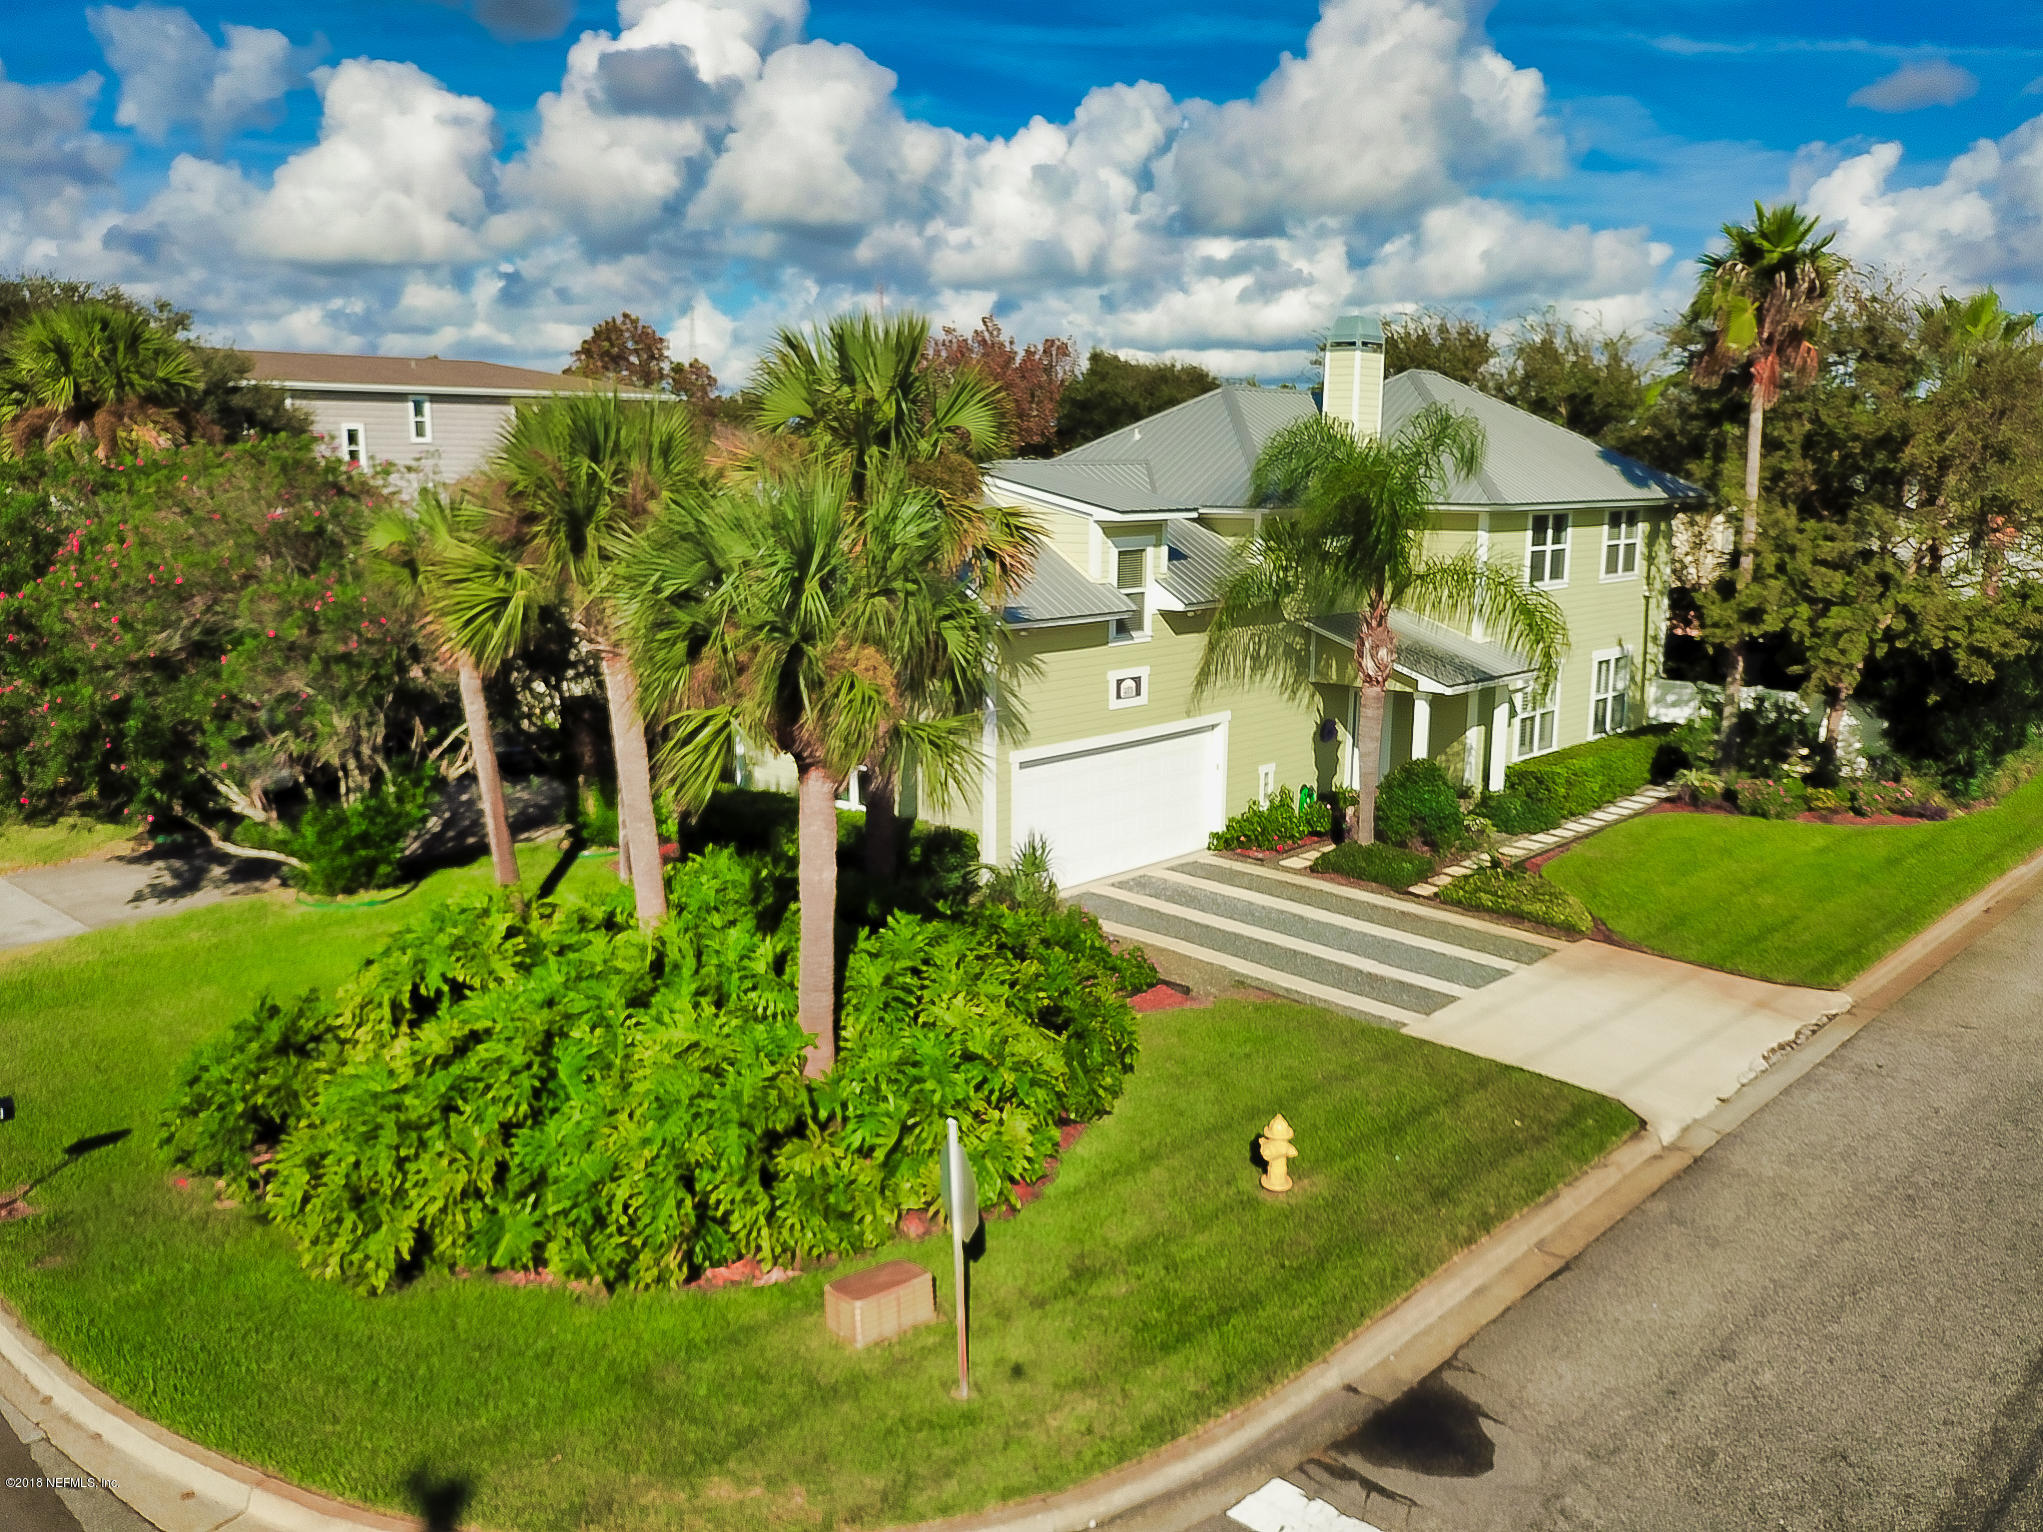 403 15TH, JACKSONVILLE BEACH, FLORIDA 32250, 5 Bedrooms Bedrooms, ,3 BathroomsBathrooms,Residential - single family,For sale,15TH,962580